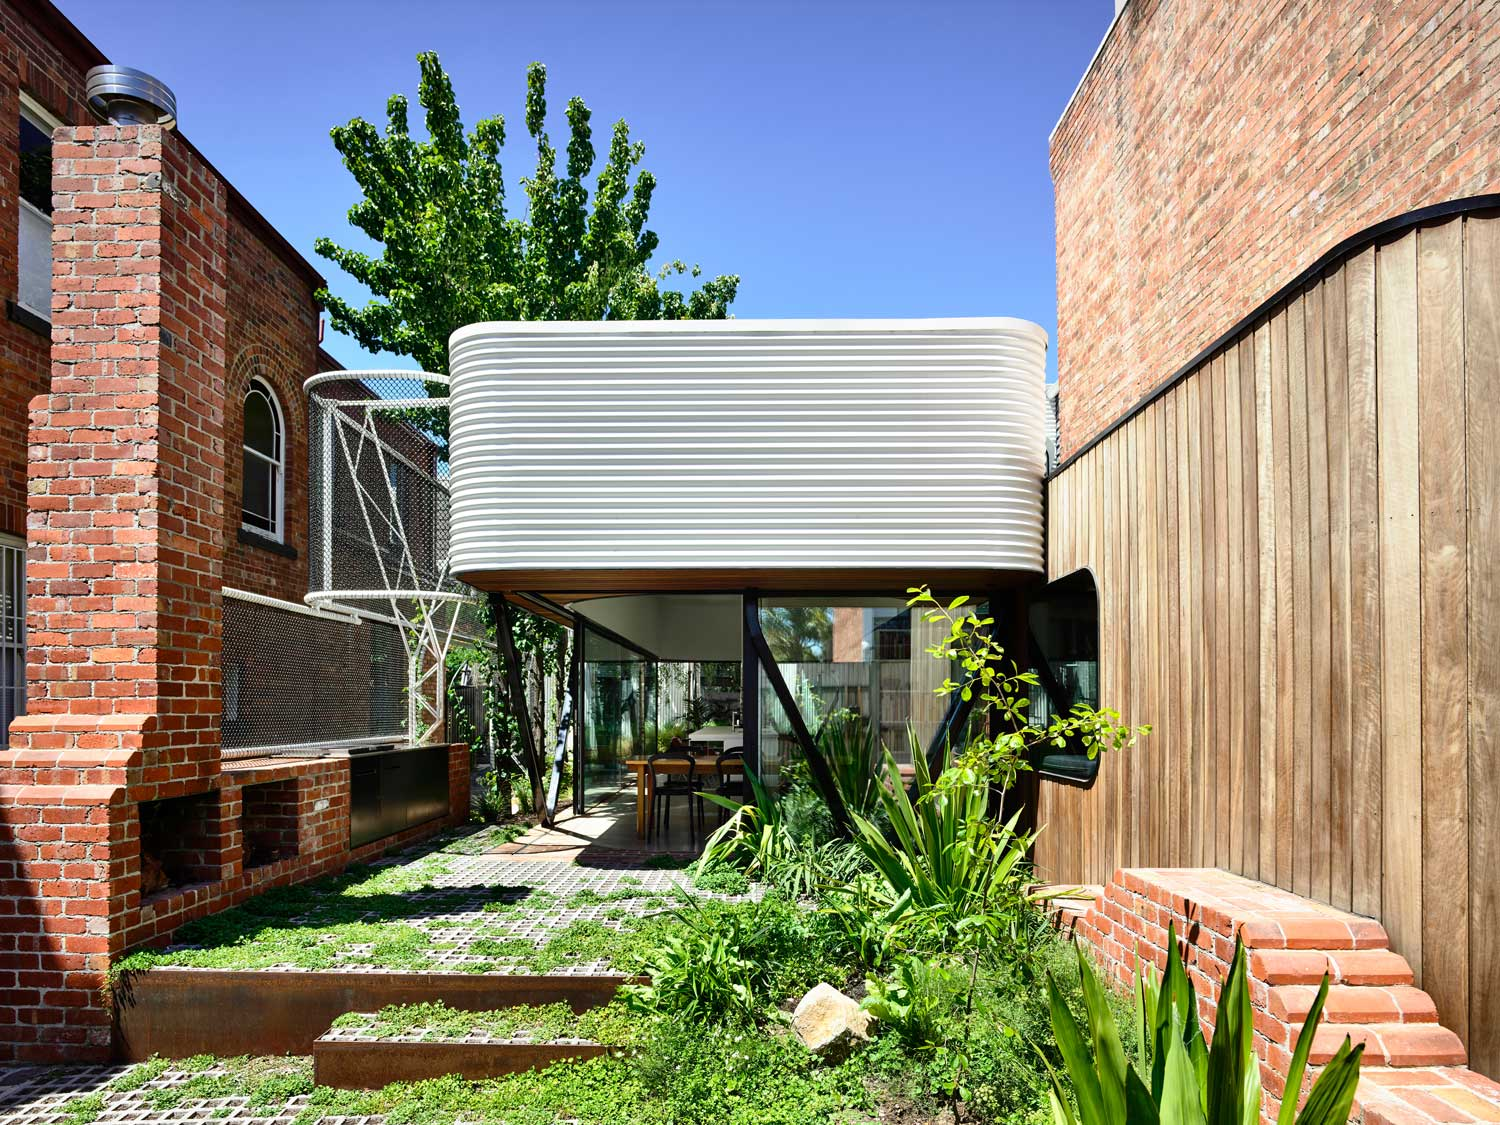 King Bill House in Fitzroy, Melbourne by Austin Maynard Architects.